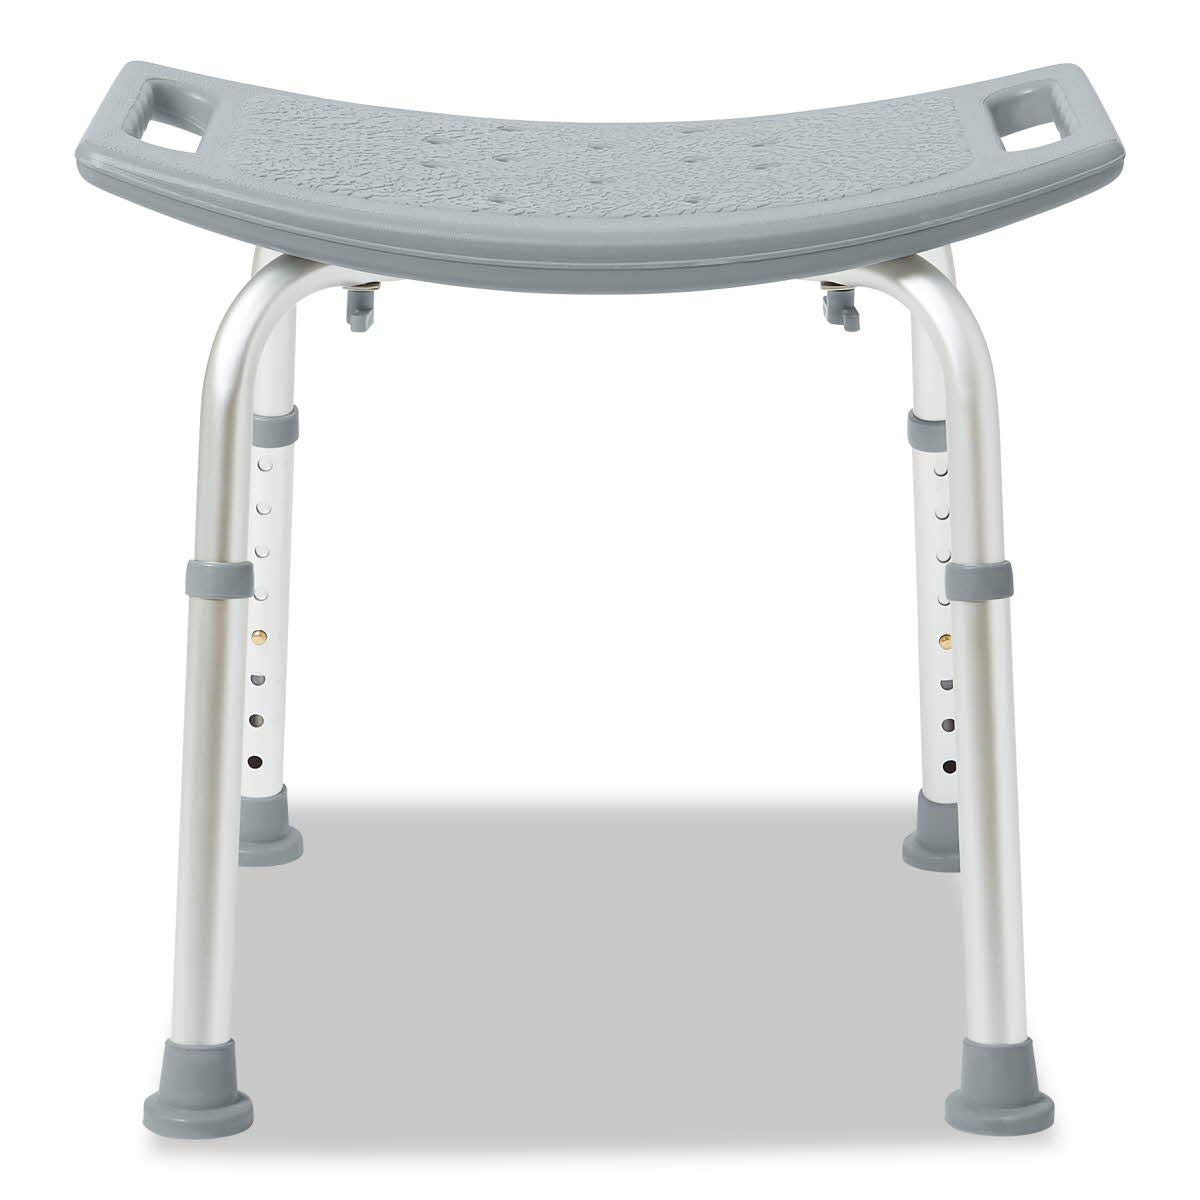 Popular product Medline Bath Bench Without Max 75% OFF Gray Back